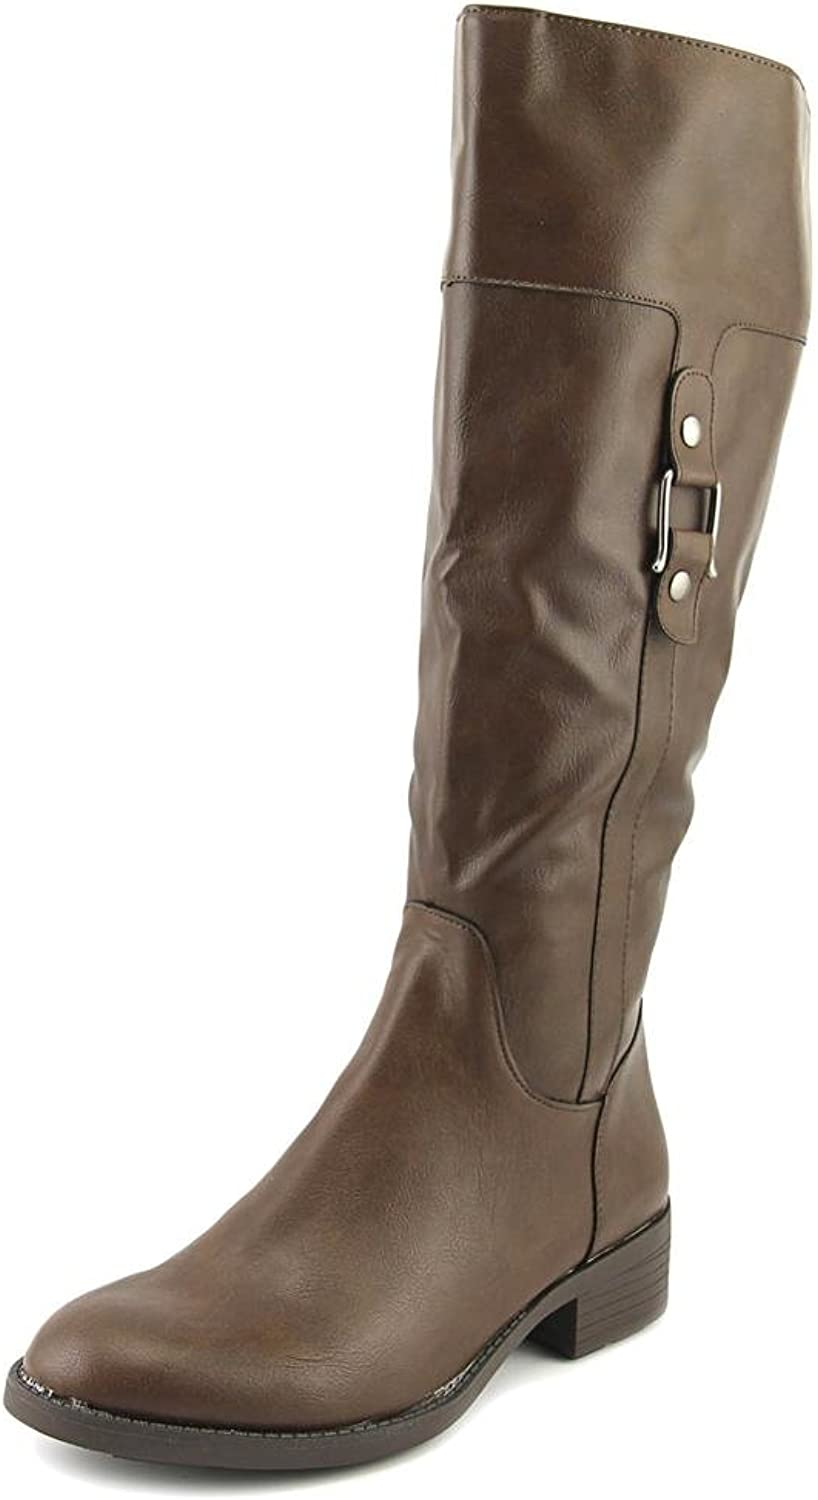 Style & Co. Astaire Women's Boots, Brown, Size 8.5